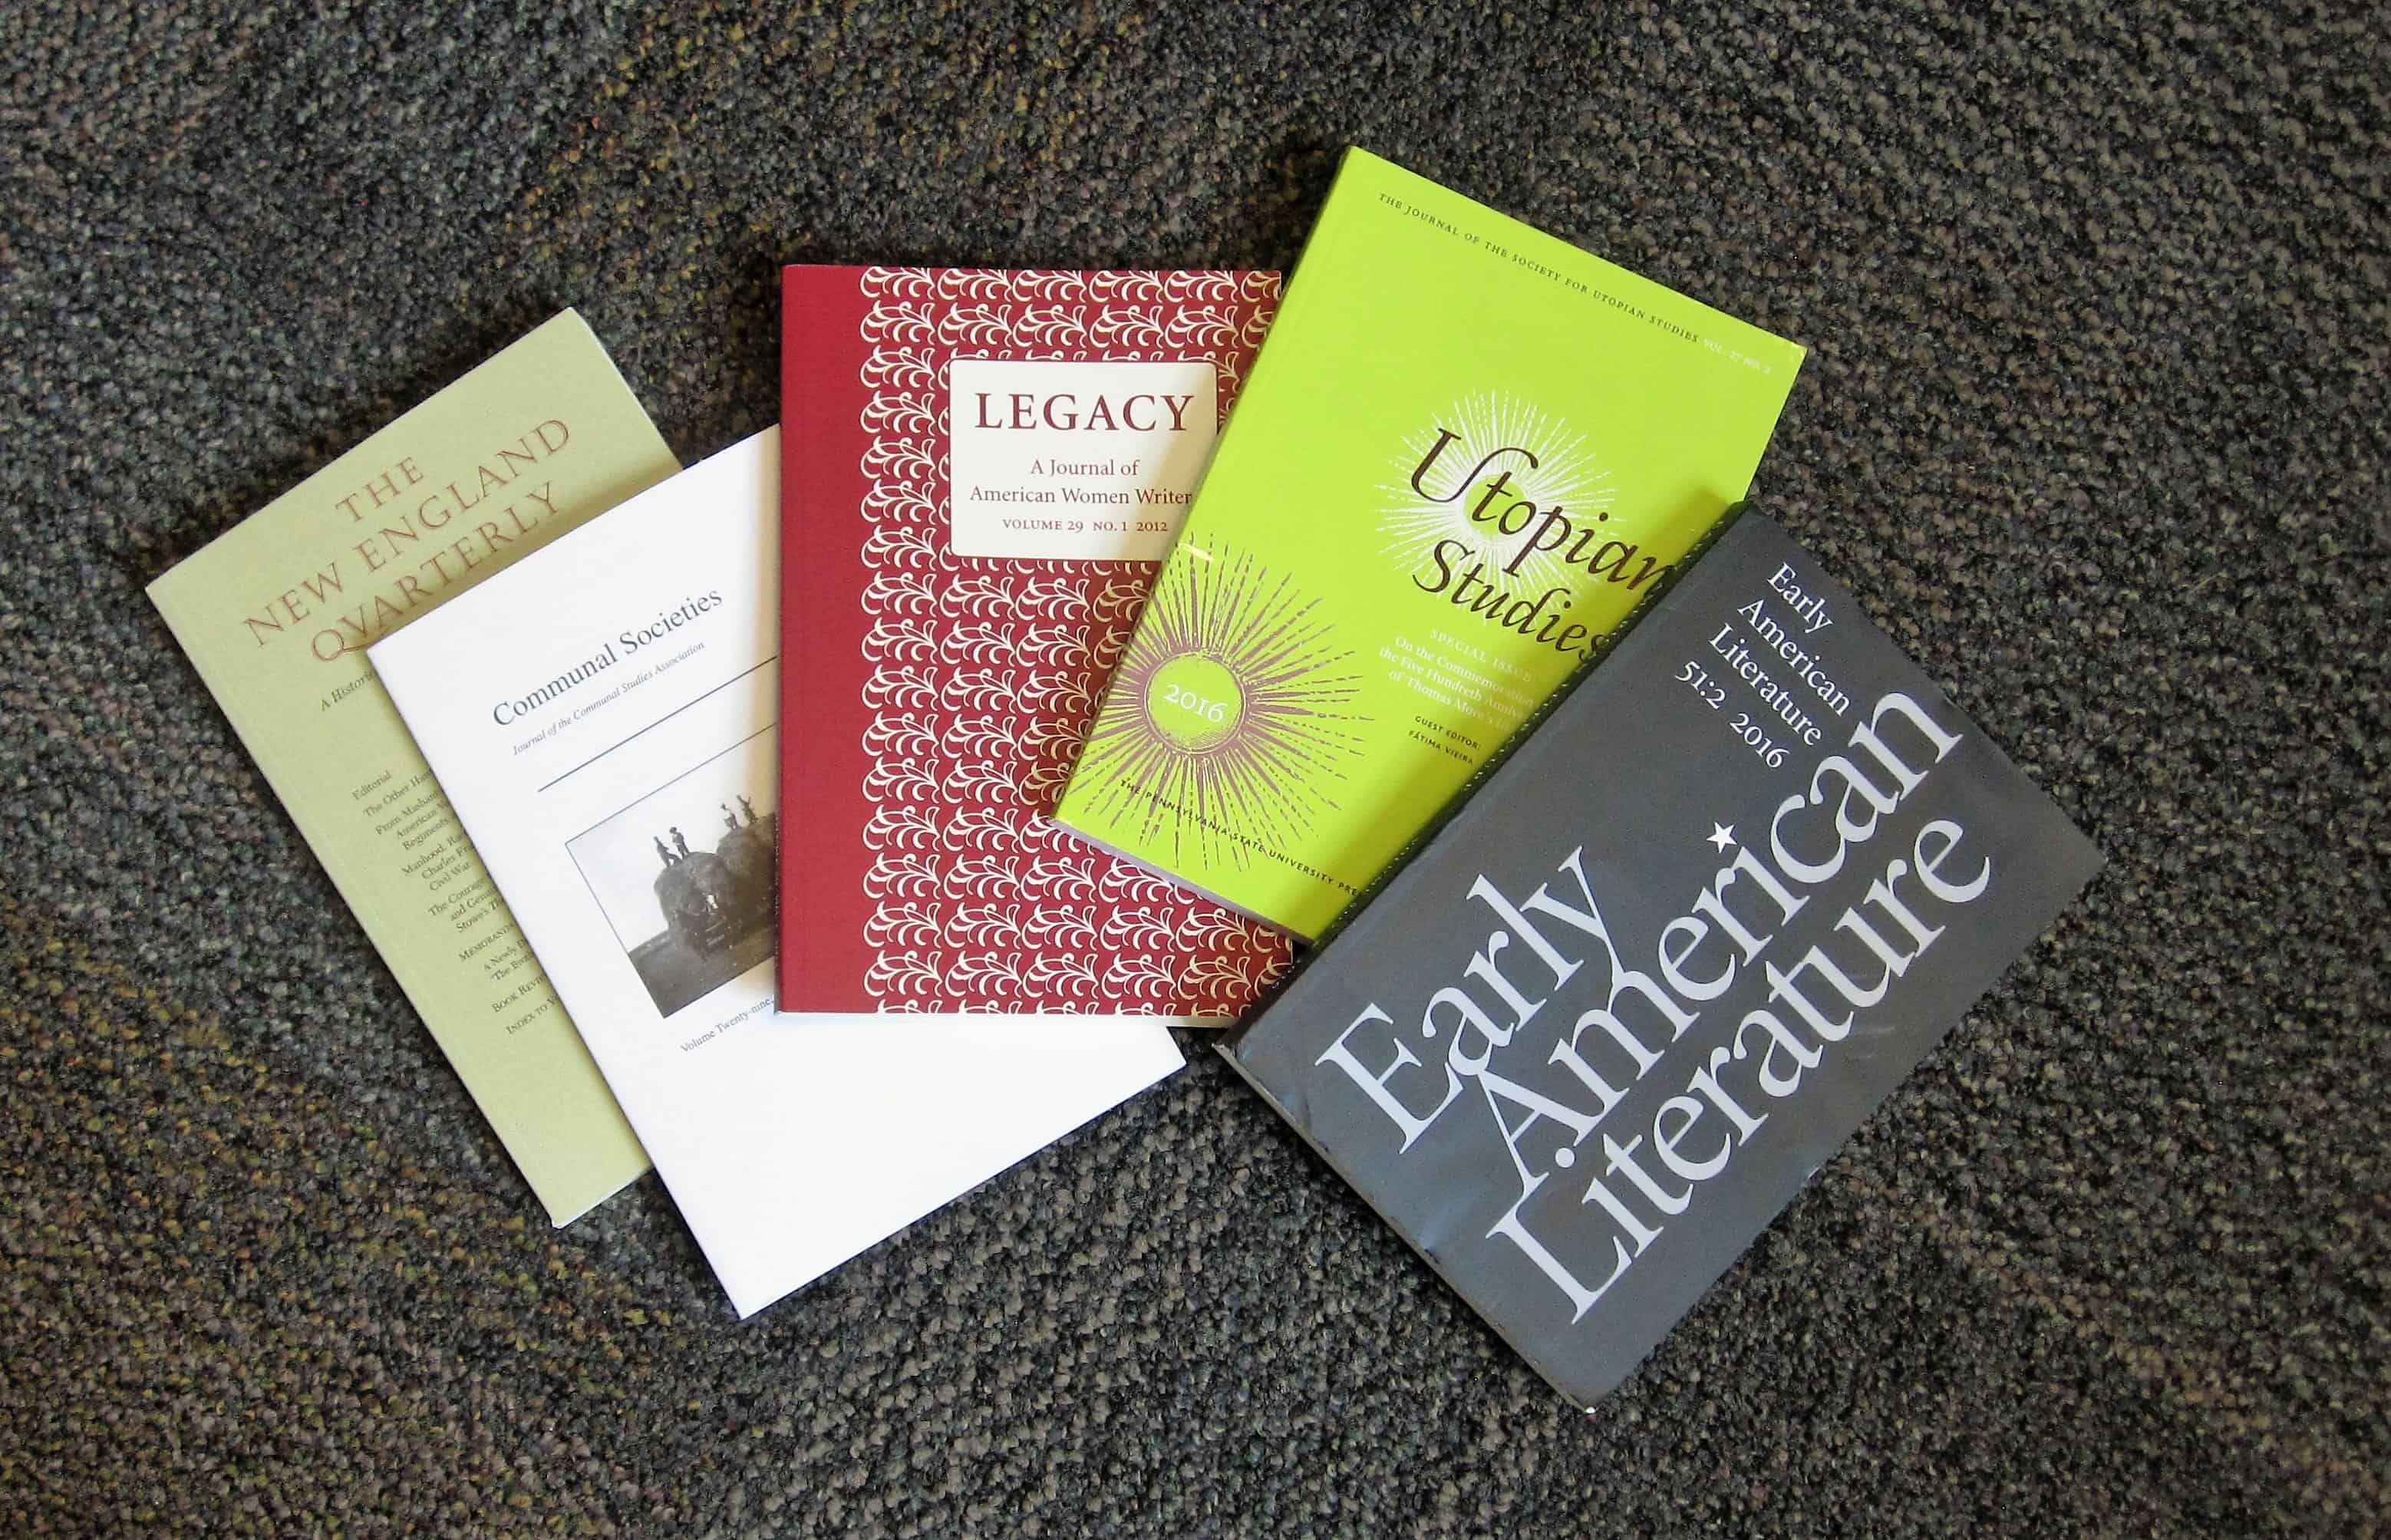 Photo of journals with book reviews by Etta Madden